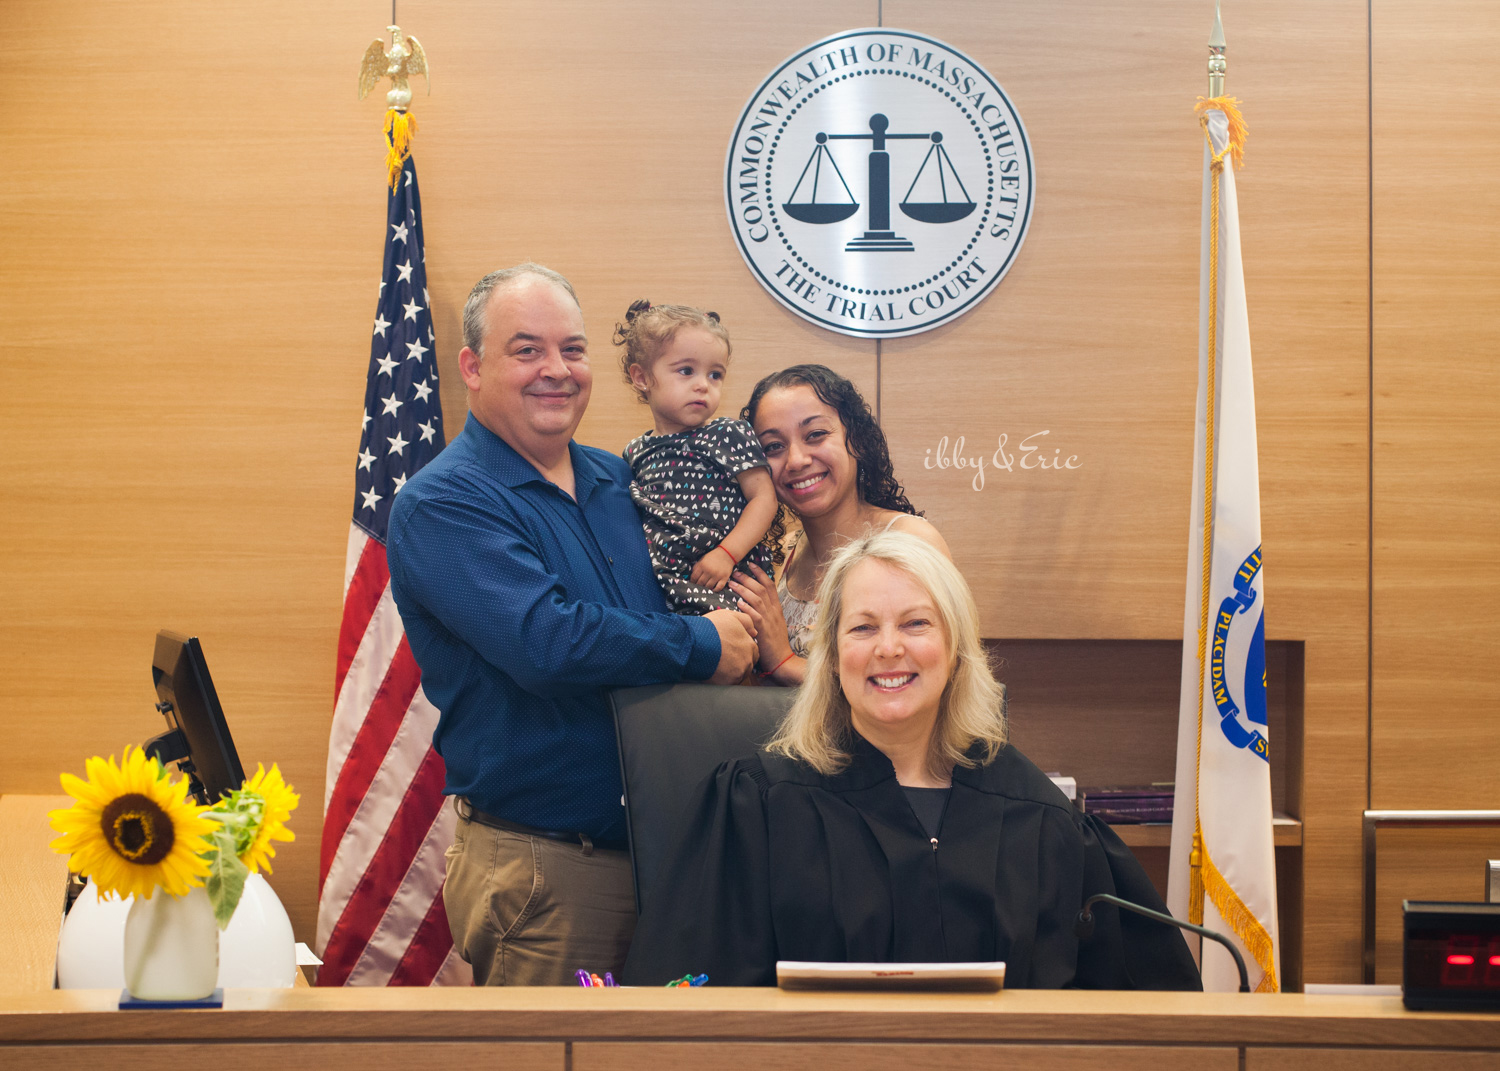 A Franklin County Superior Court judge poses for a photo with a happy family that just completed their adoption ceremony.